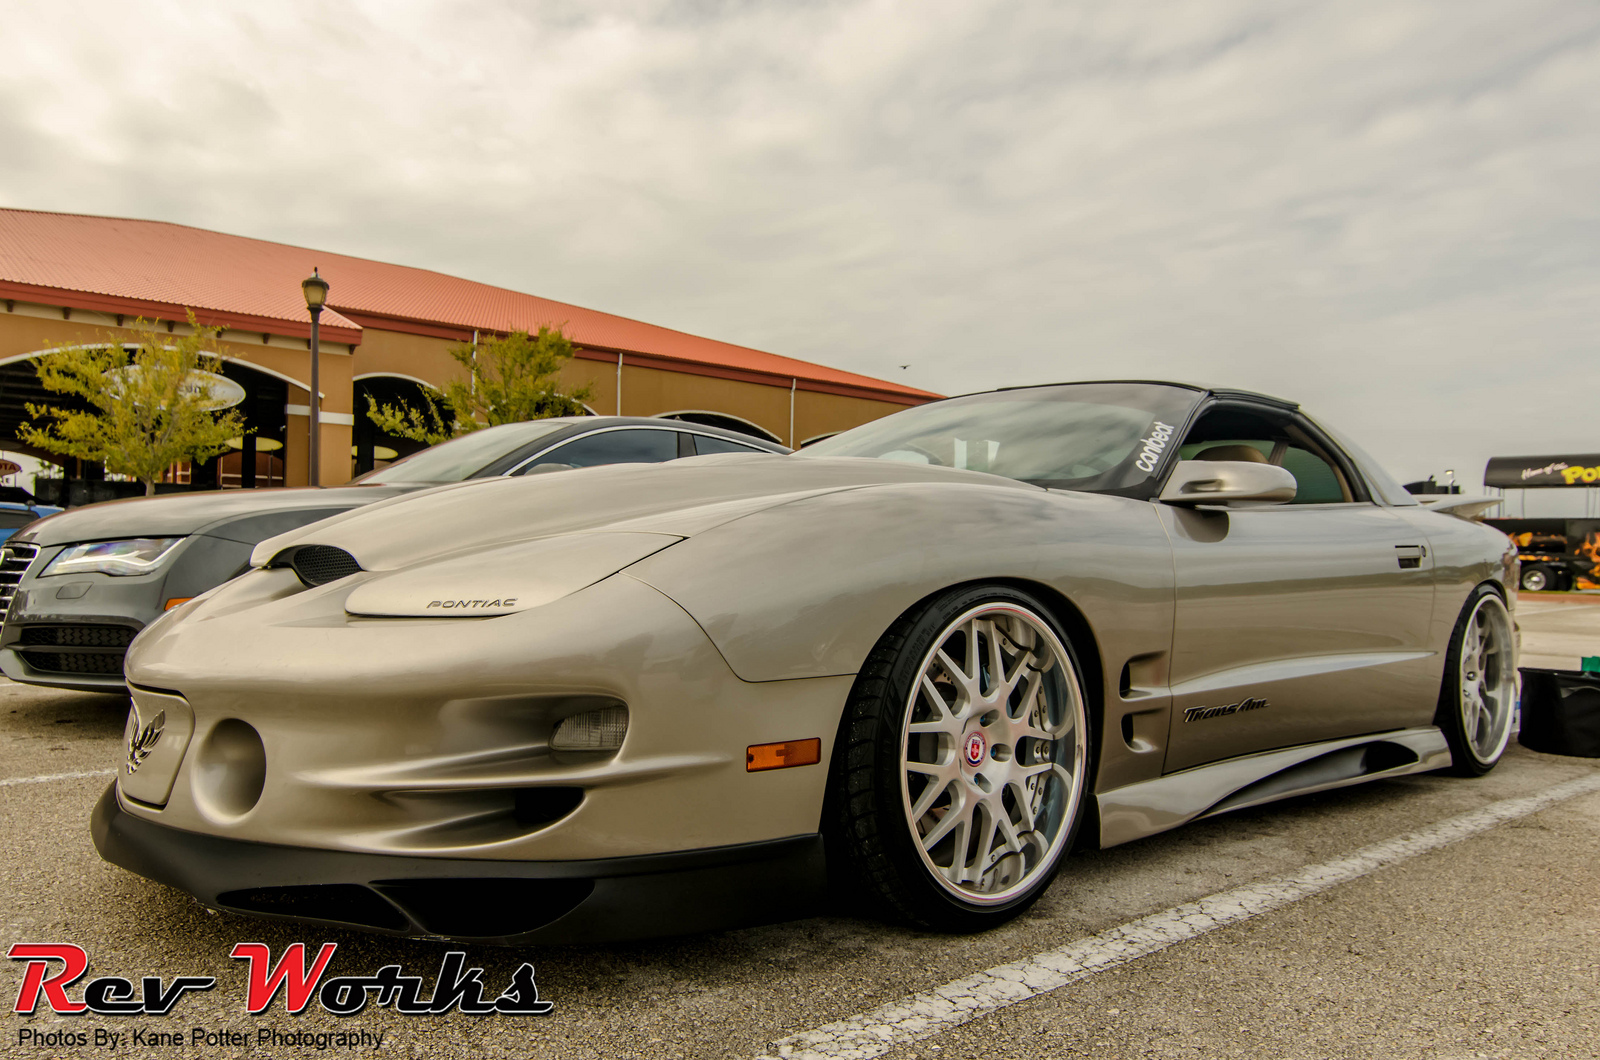 vinhvle 1999 Pontiac Trans Am Specs, Photos, Modification ...